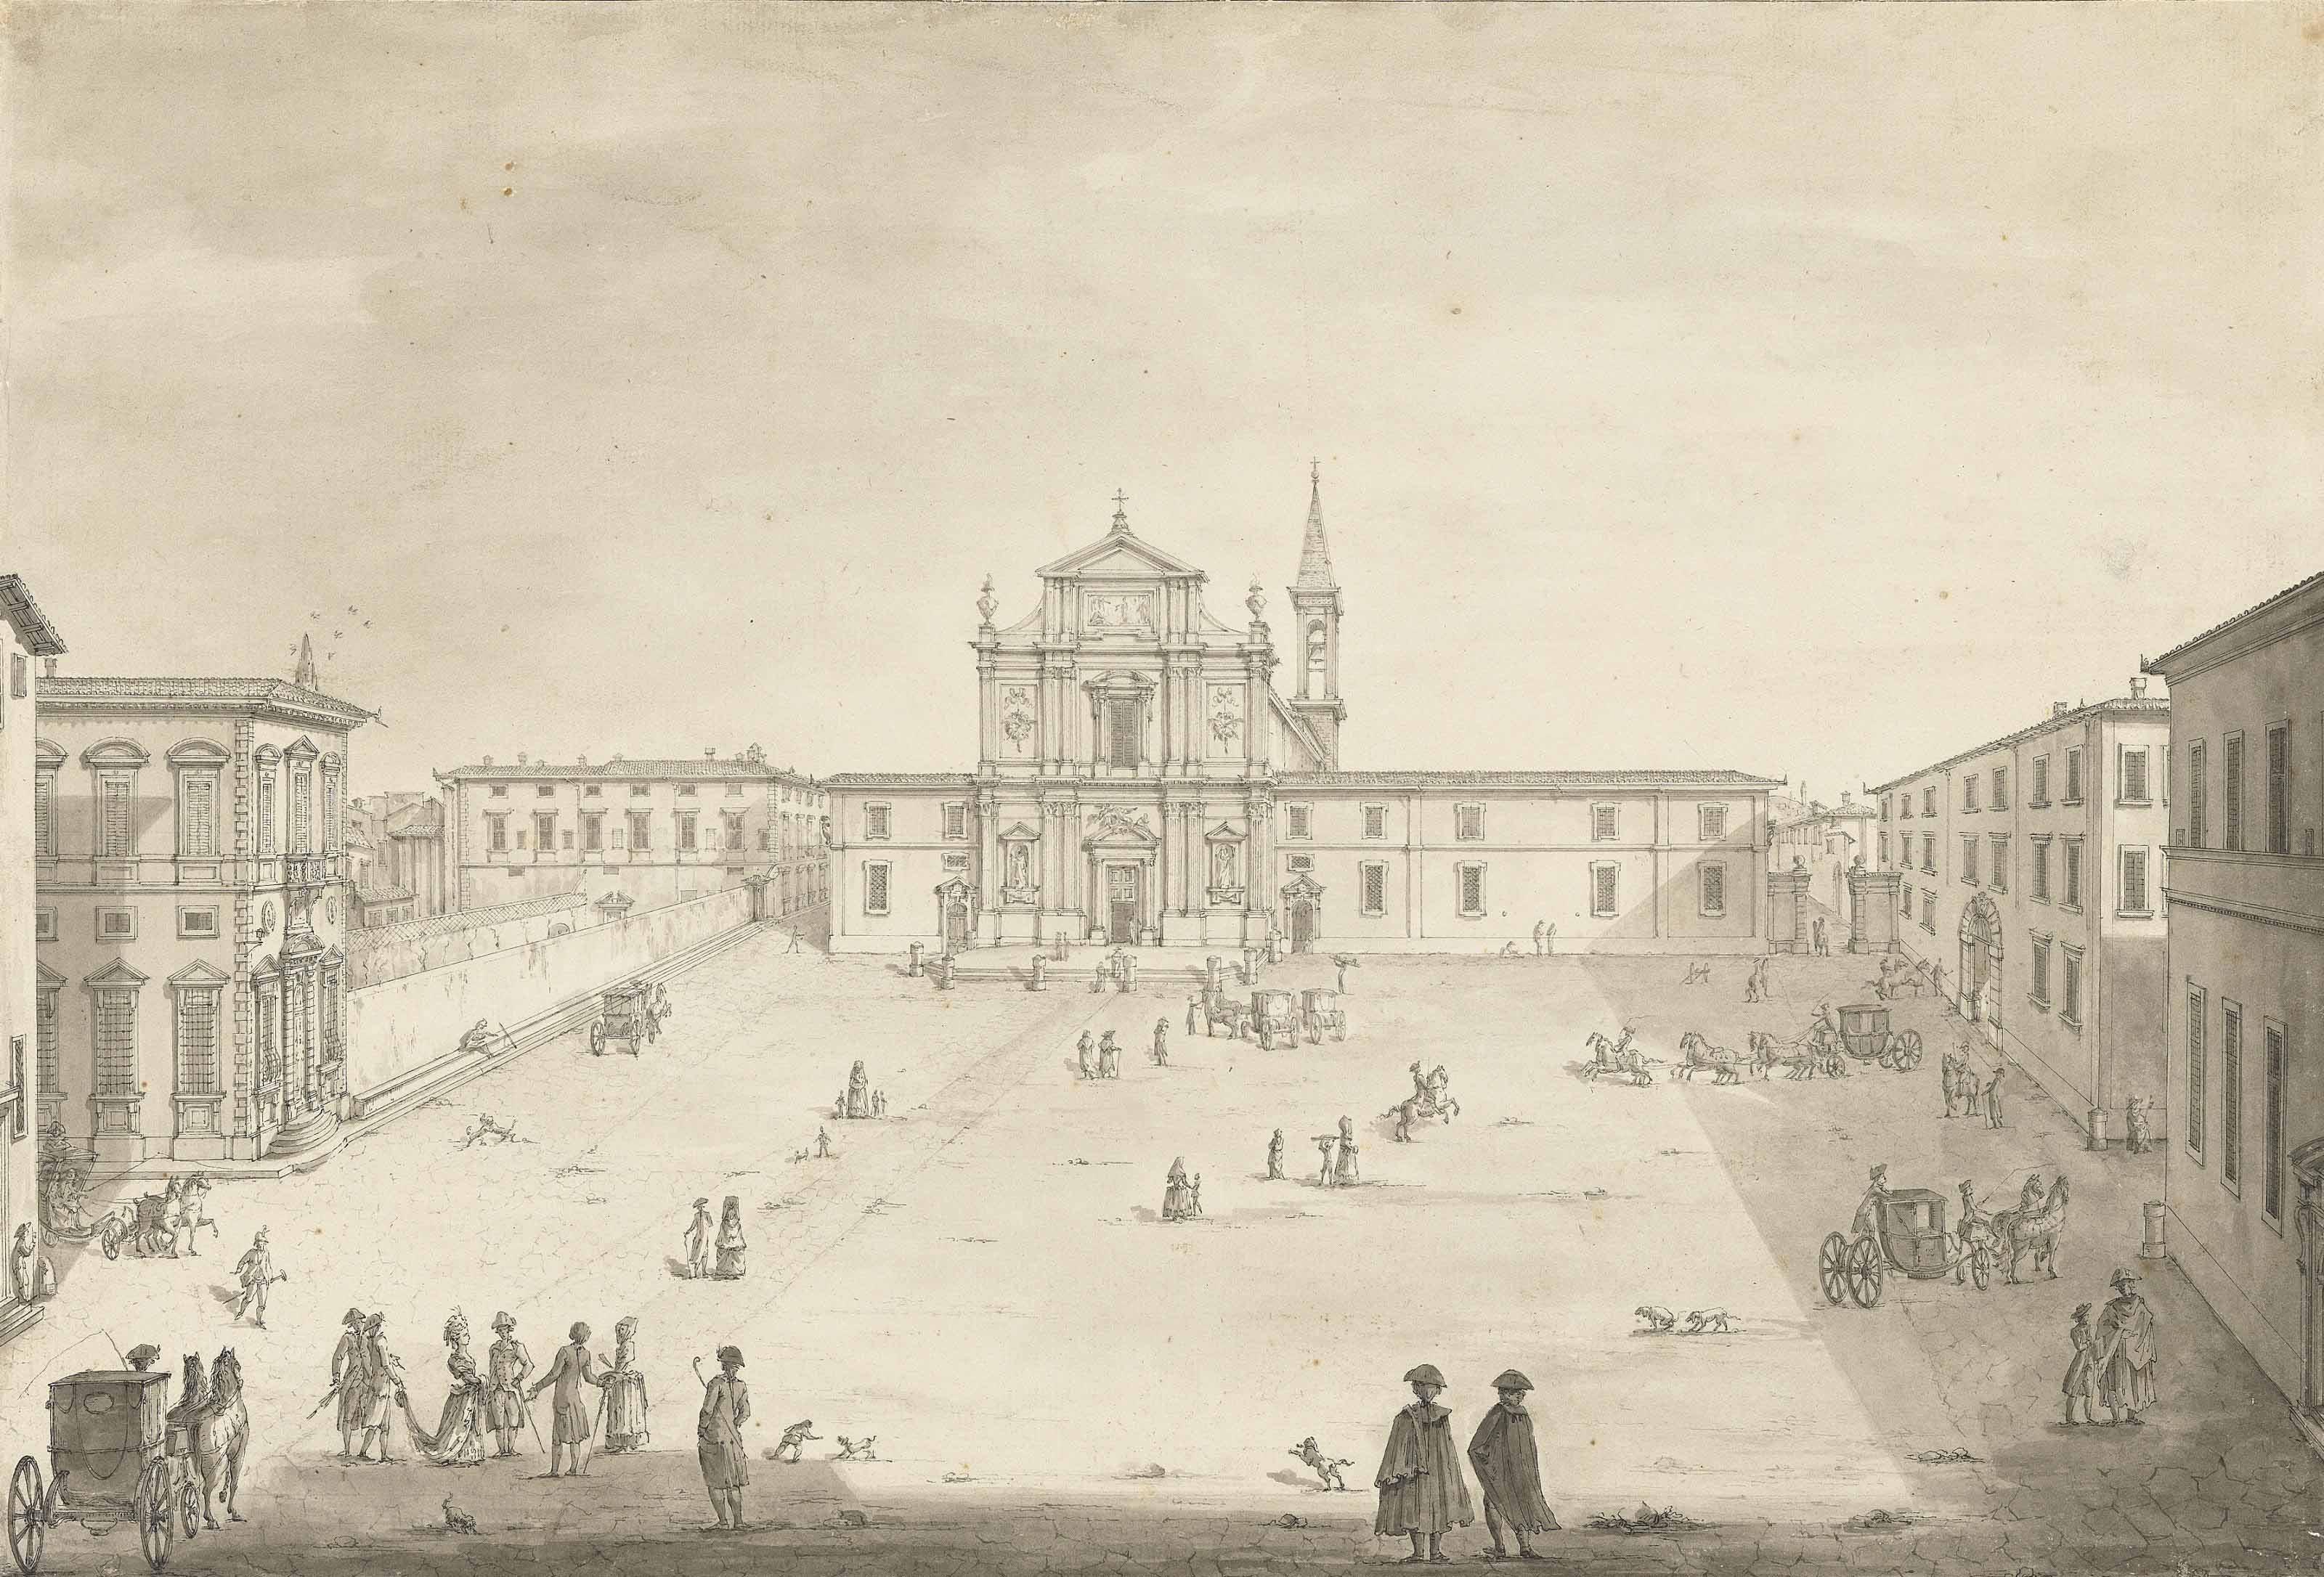 A view of the Piazza San Marco, in Florence with, from the left to the right, the Casino della Livia, the Casino Mediceo, the Convent of San Marco, the Giardino dei Semplici and the Accademia di belle arti